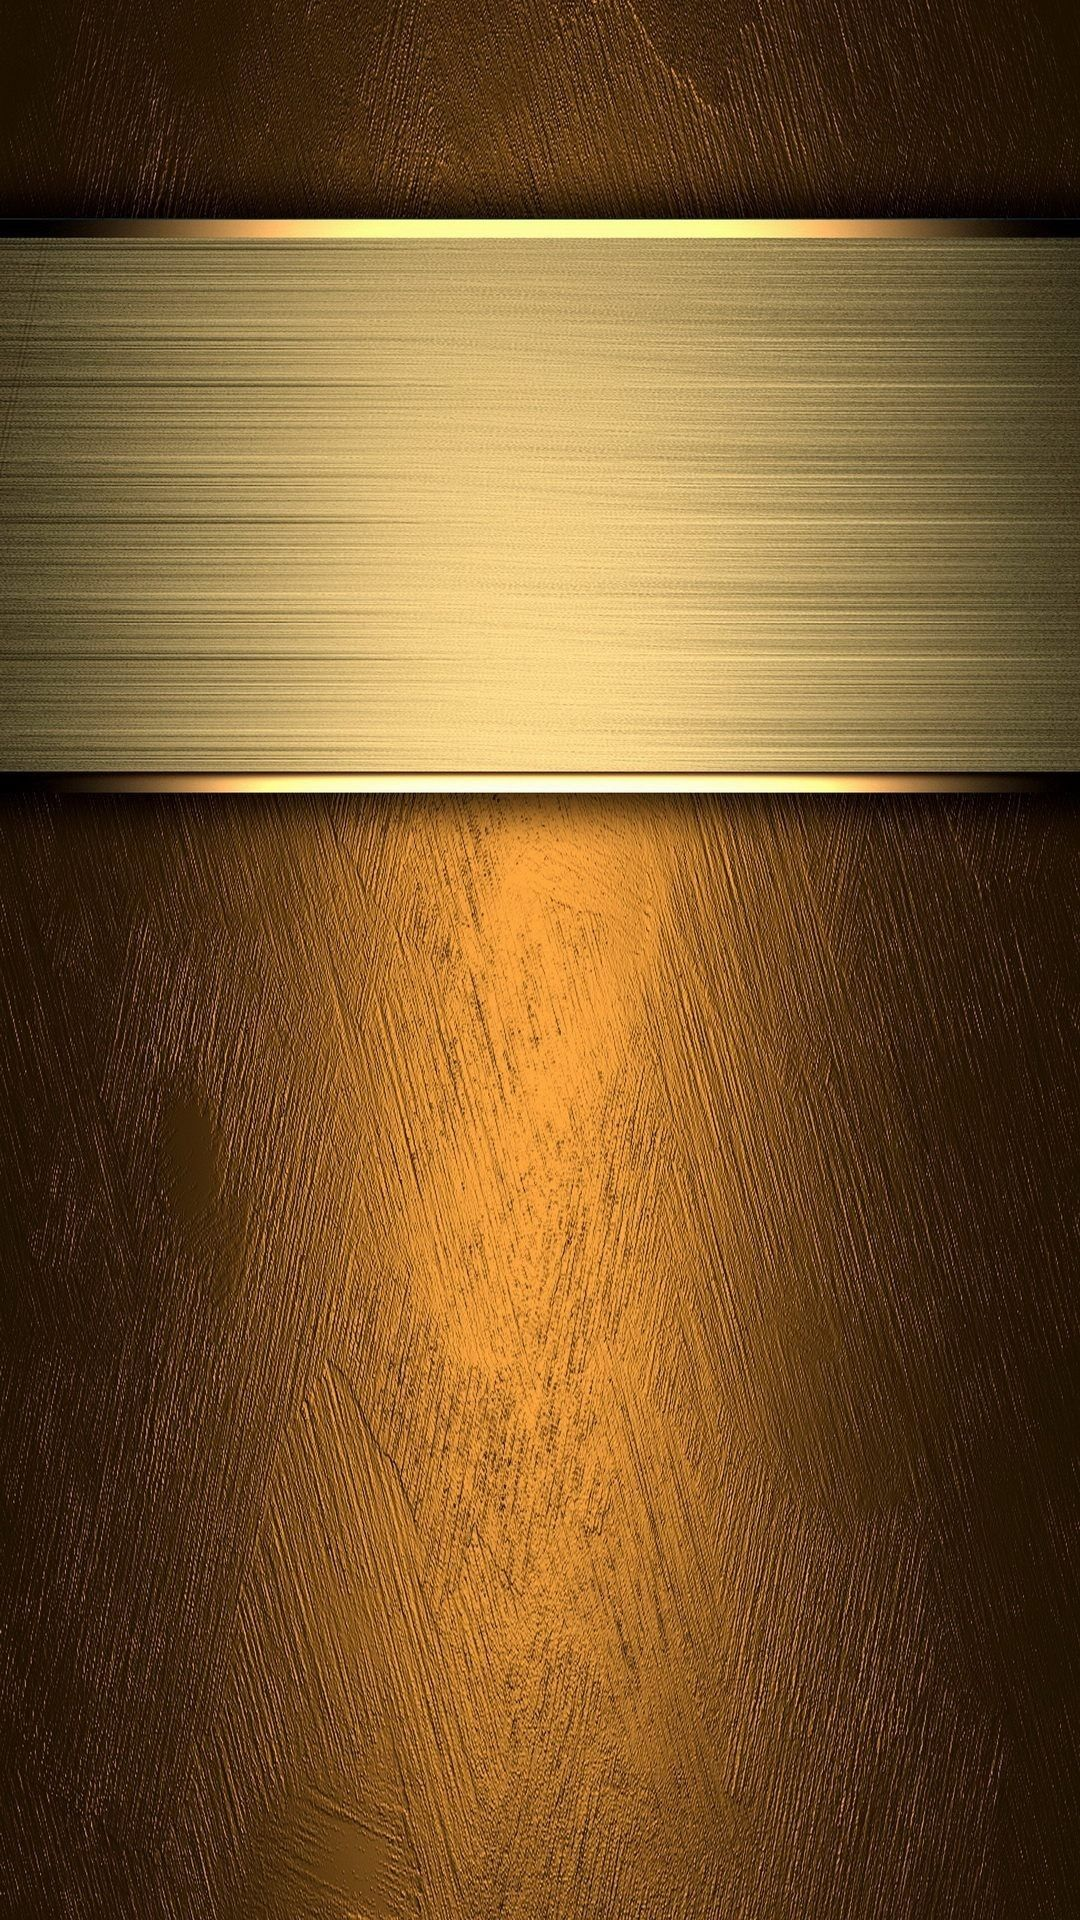 iPhone Wallpaper. iPhone Wallpaper Gold Wallpaper Hd ...